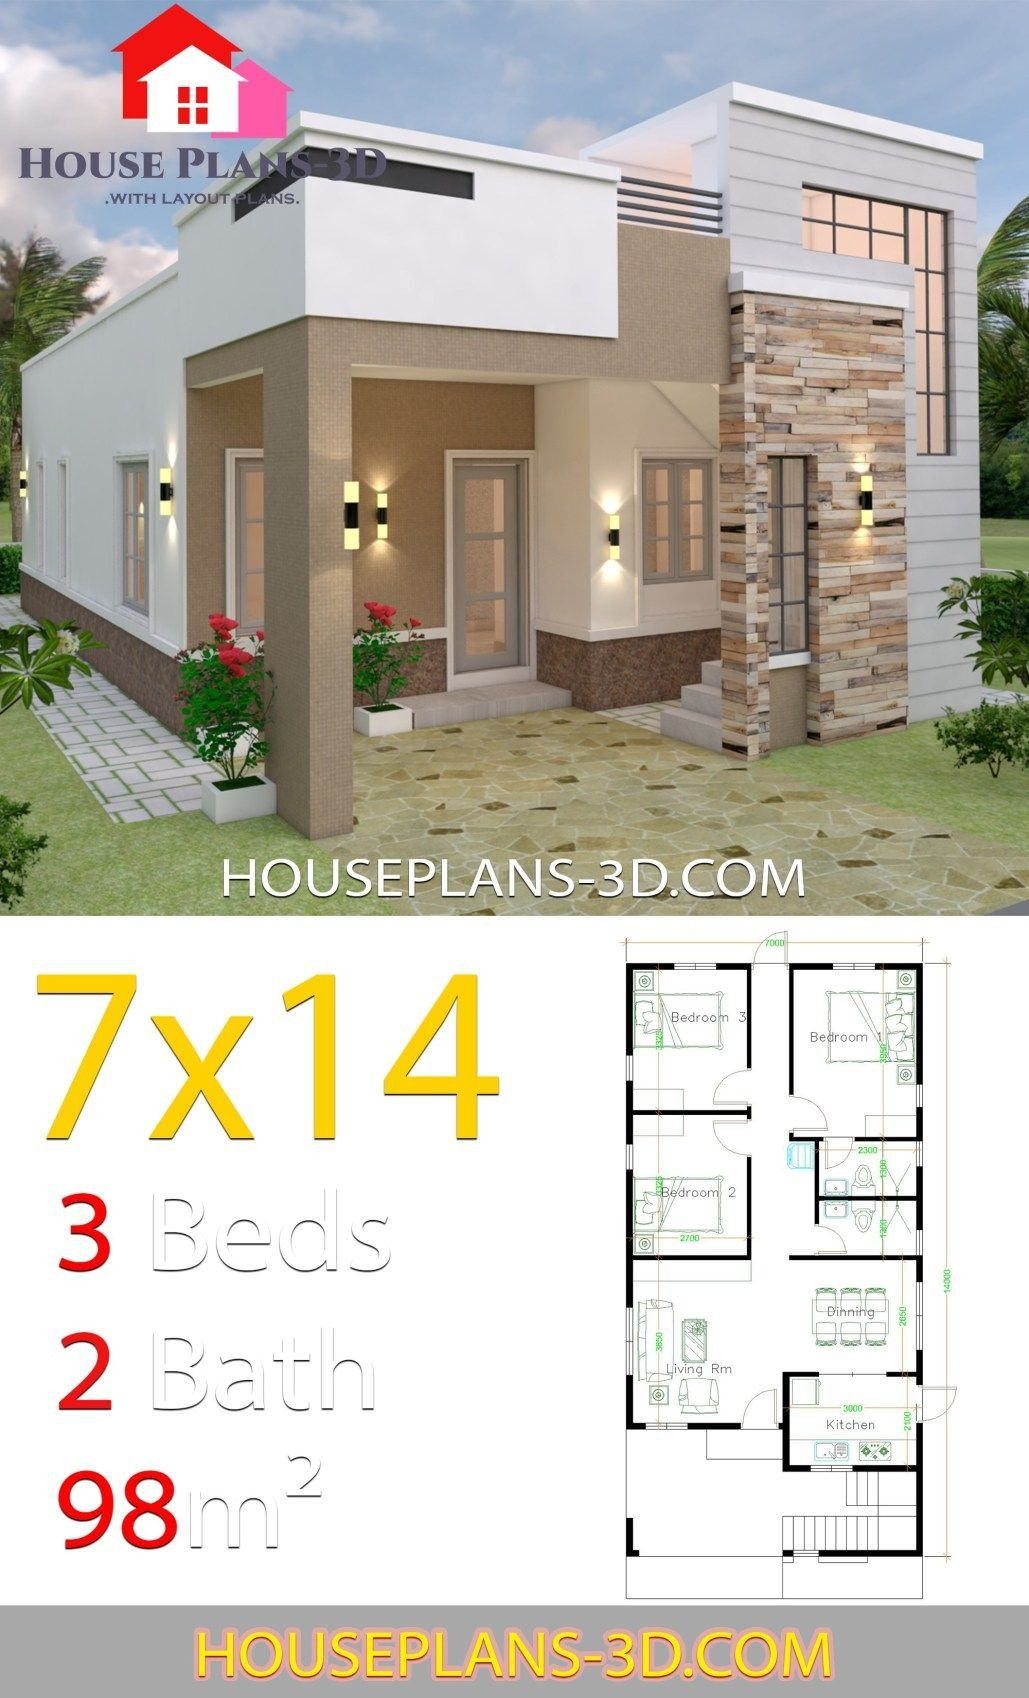 House Design Plans 7x14 With 3 Bedrooms House Construction Plan Architectural House Plans Small House Design Plans